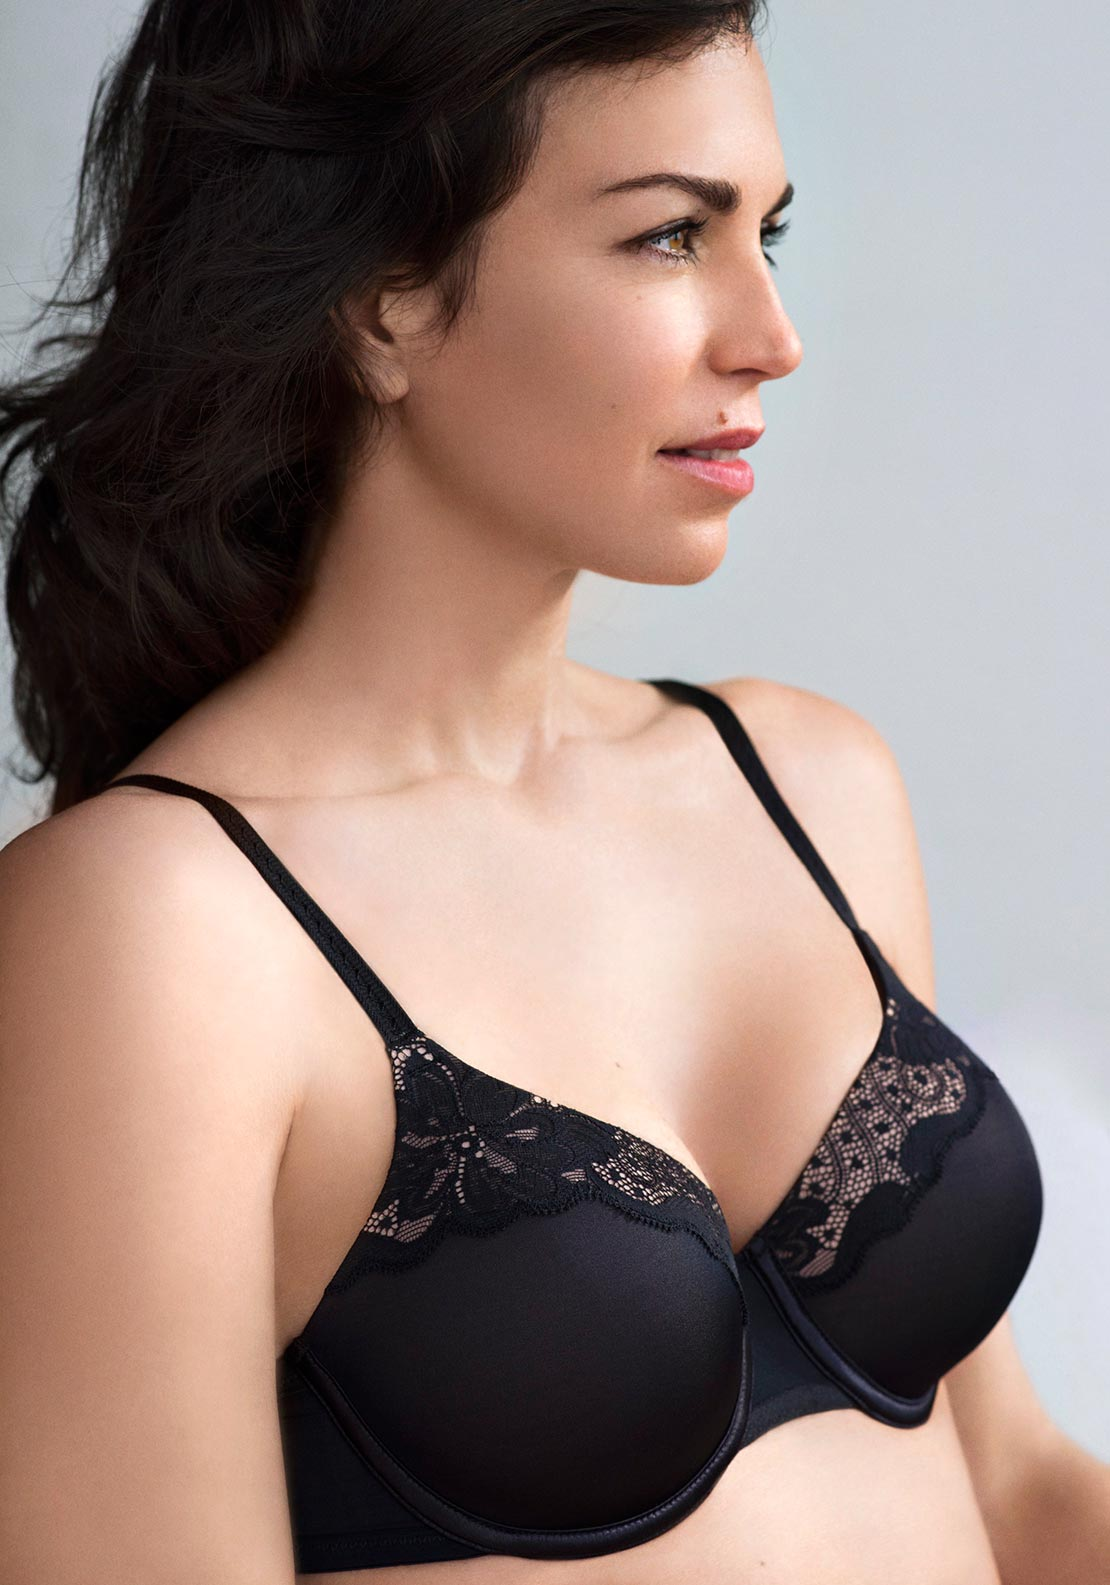 Playtex Contour Perfection Underwire Bra, Black